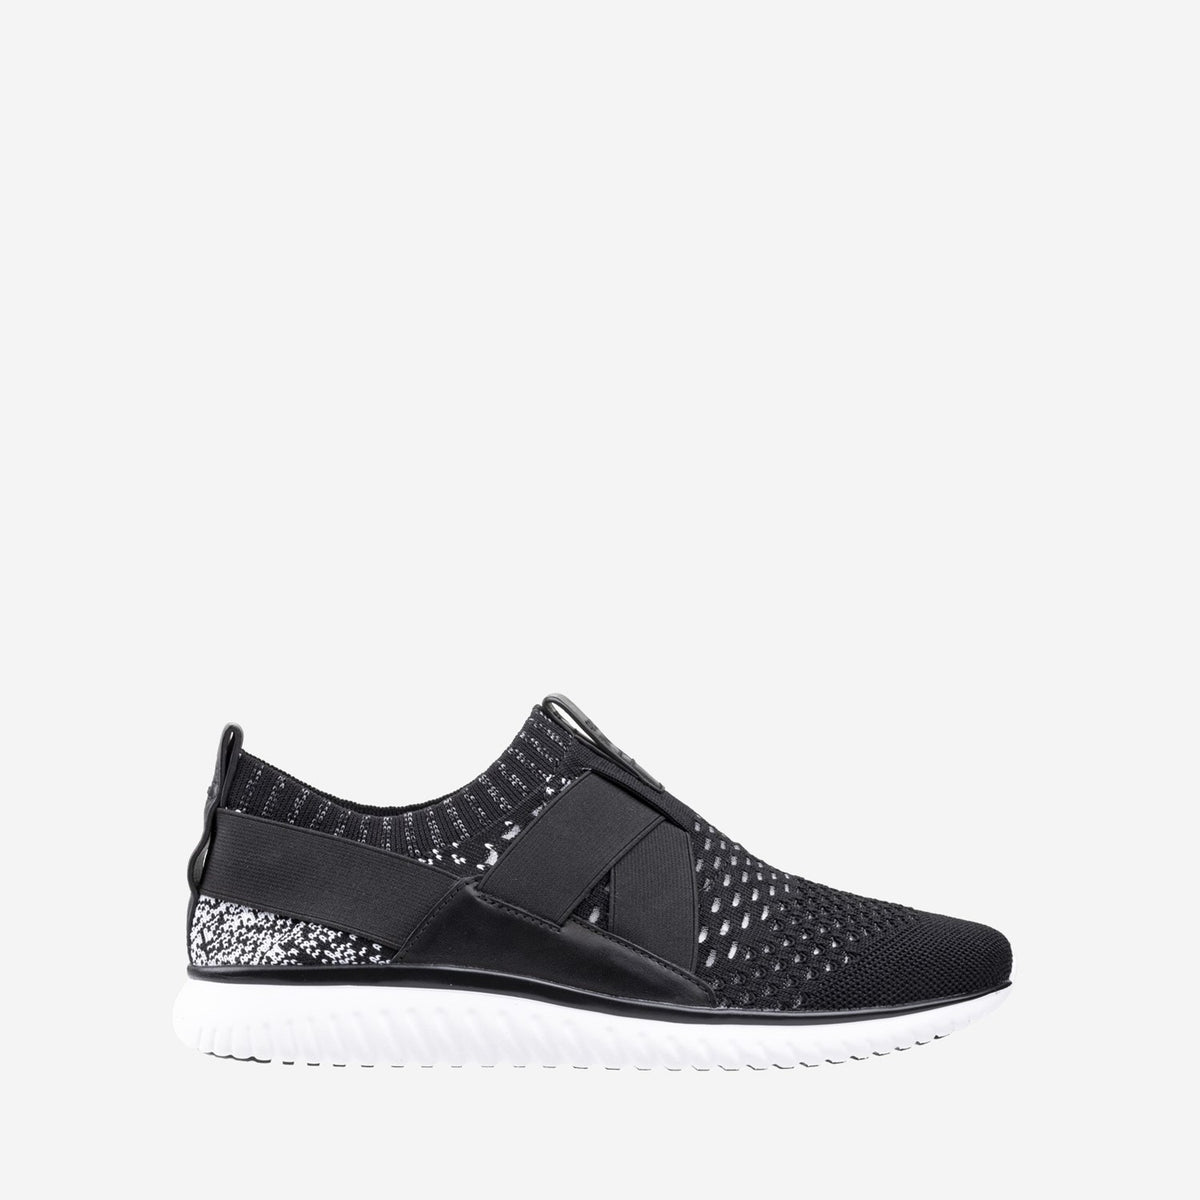 Men's GrandMotion Stitchlite Slip On Trainer Black/White Ombre Knit